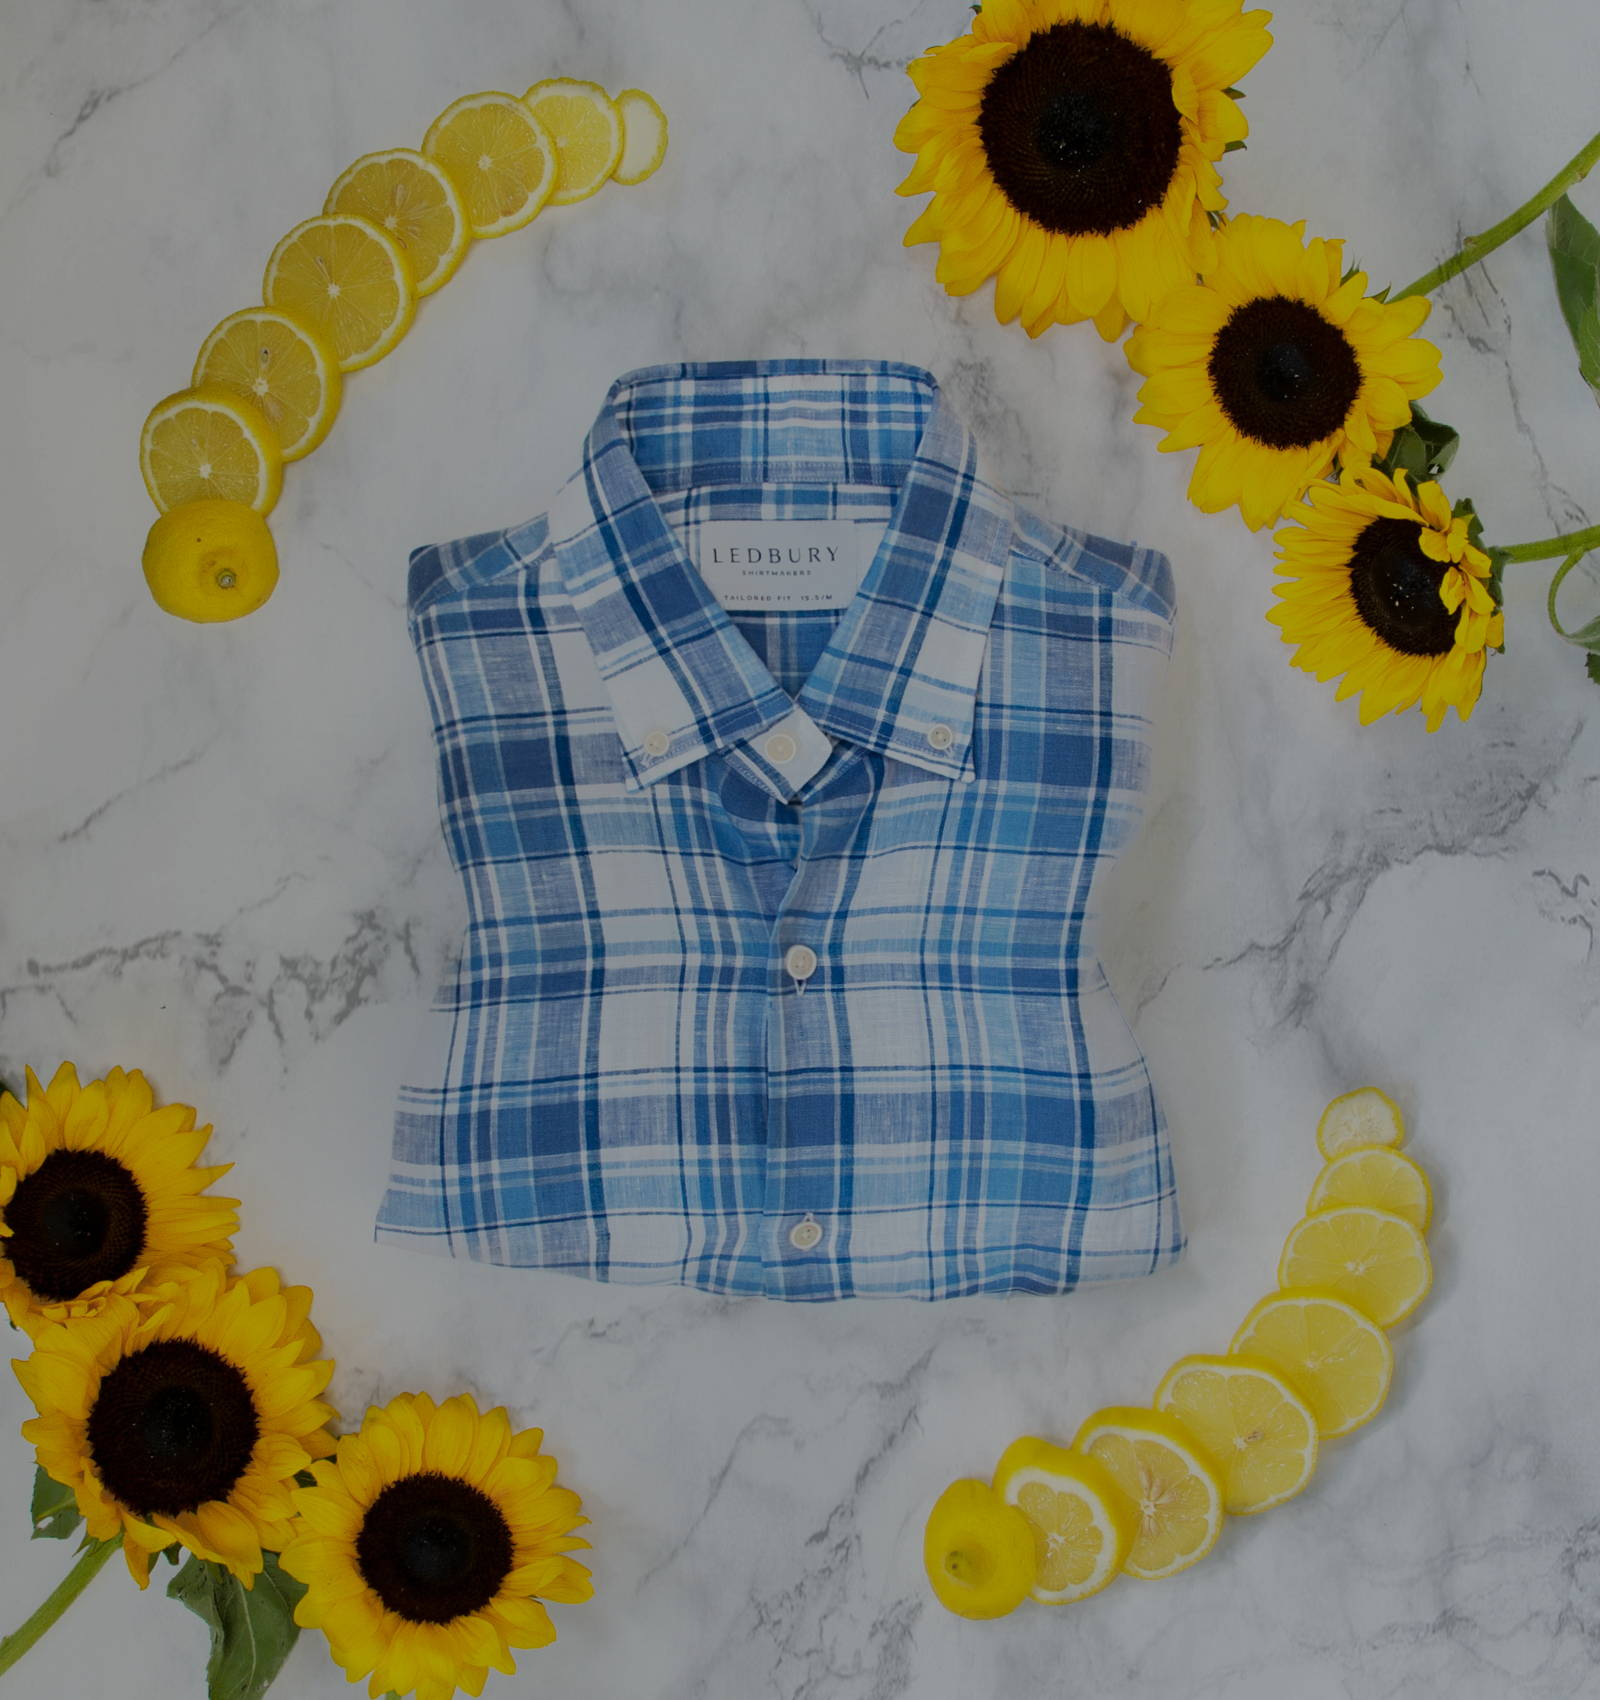 The Blue Raulin Linen Plaid Casual Shirt surrounded by lemons and sunflowers on a marble table.